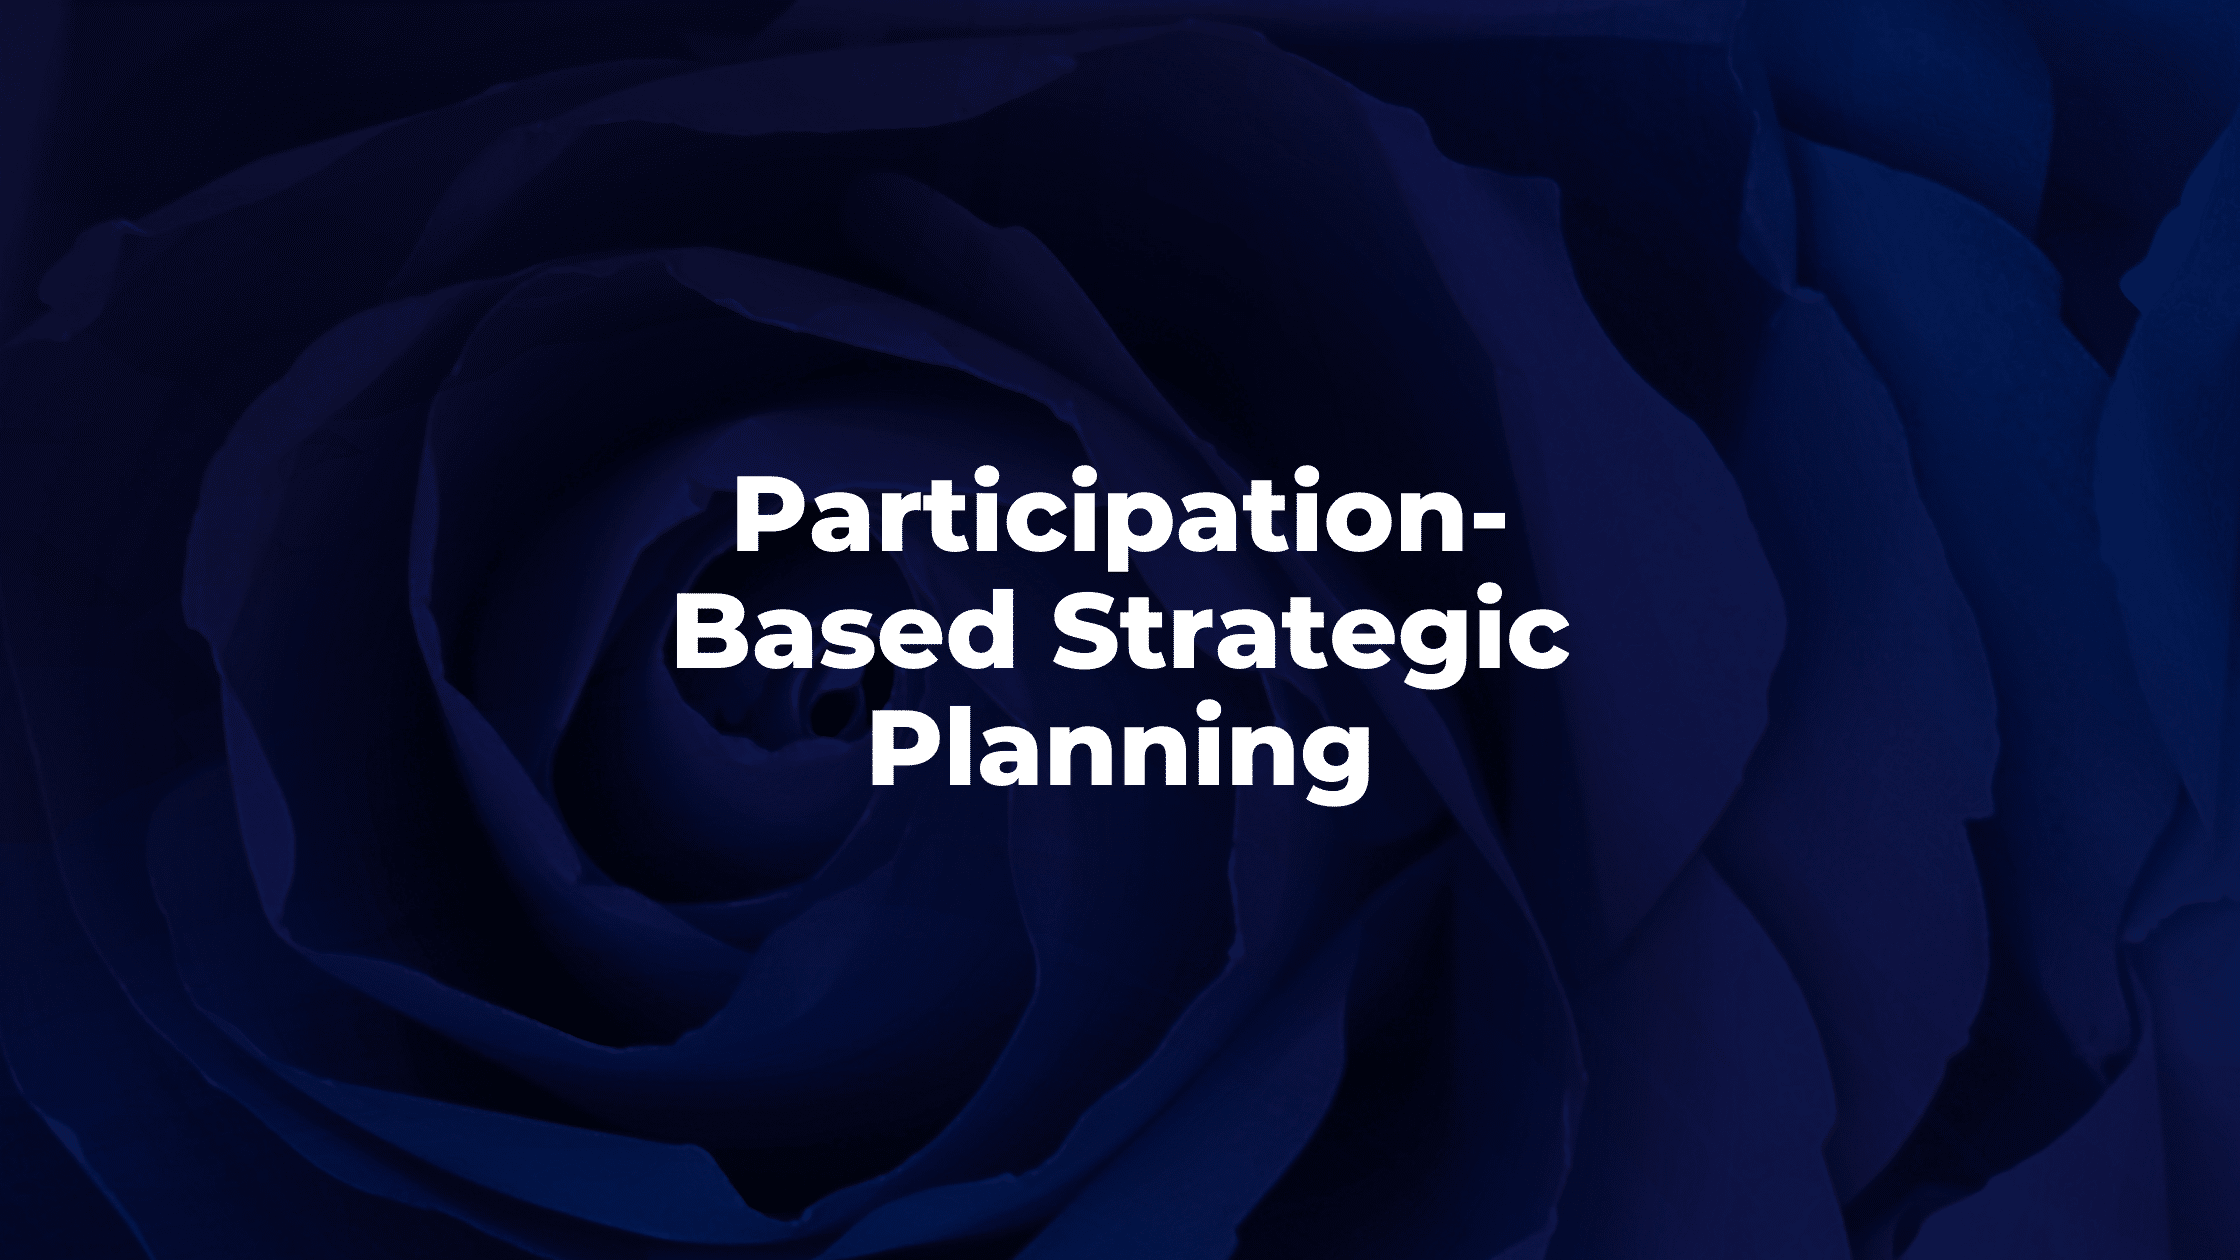 Why Participation-Based Strategic Planning is Essential